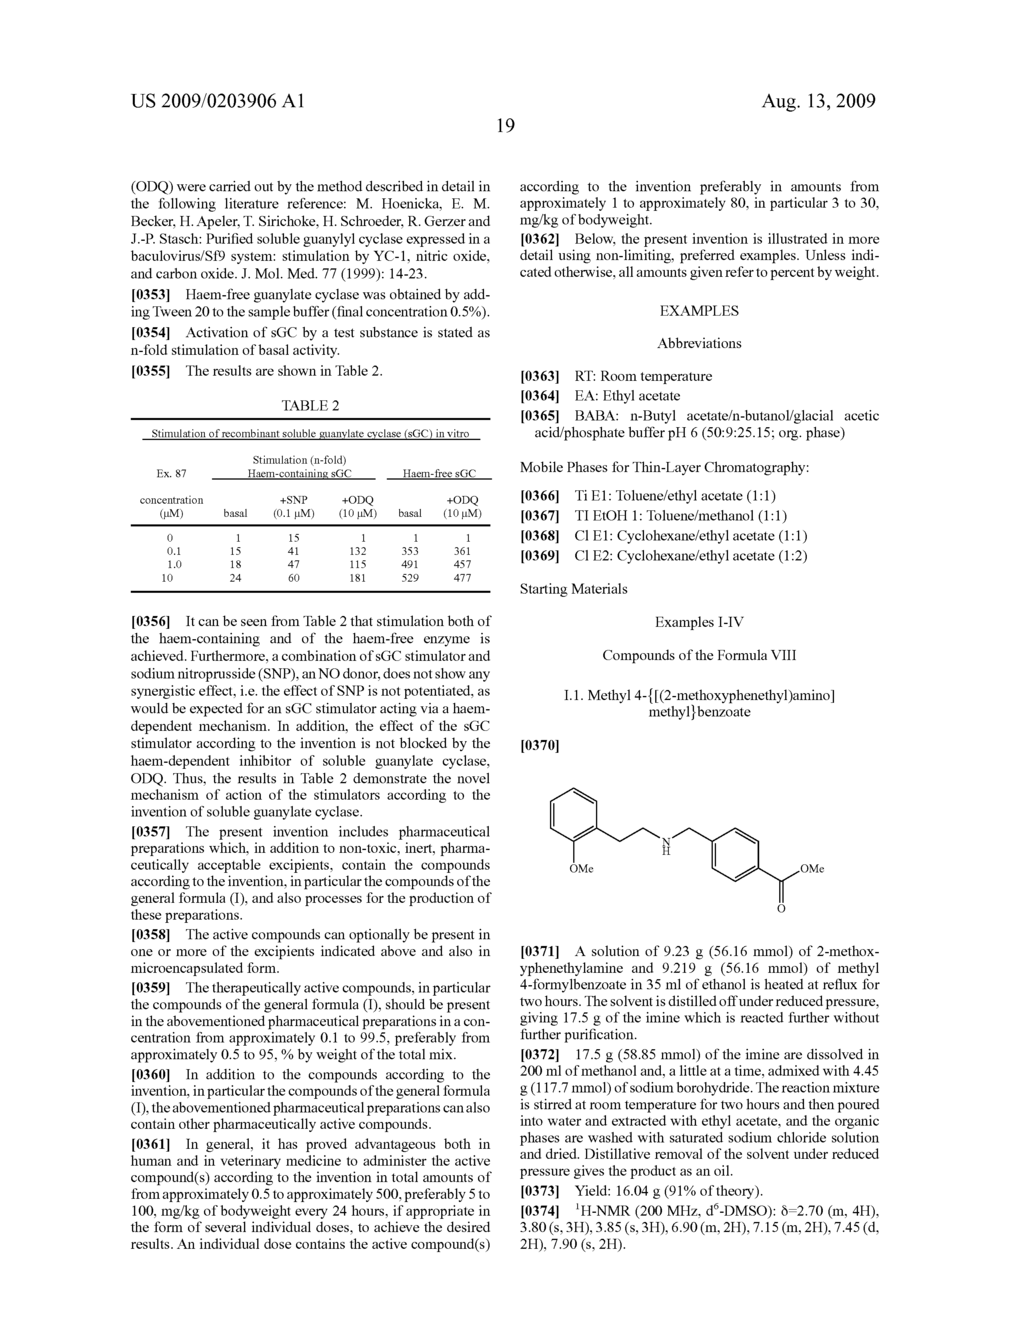 NOVEL AMINODICARBOXYLIC ACID DERIVATIVES HAVING PHARMACEUTICAL PROPERTIES - diagram, schematic, and image 20